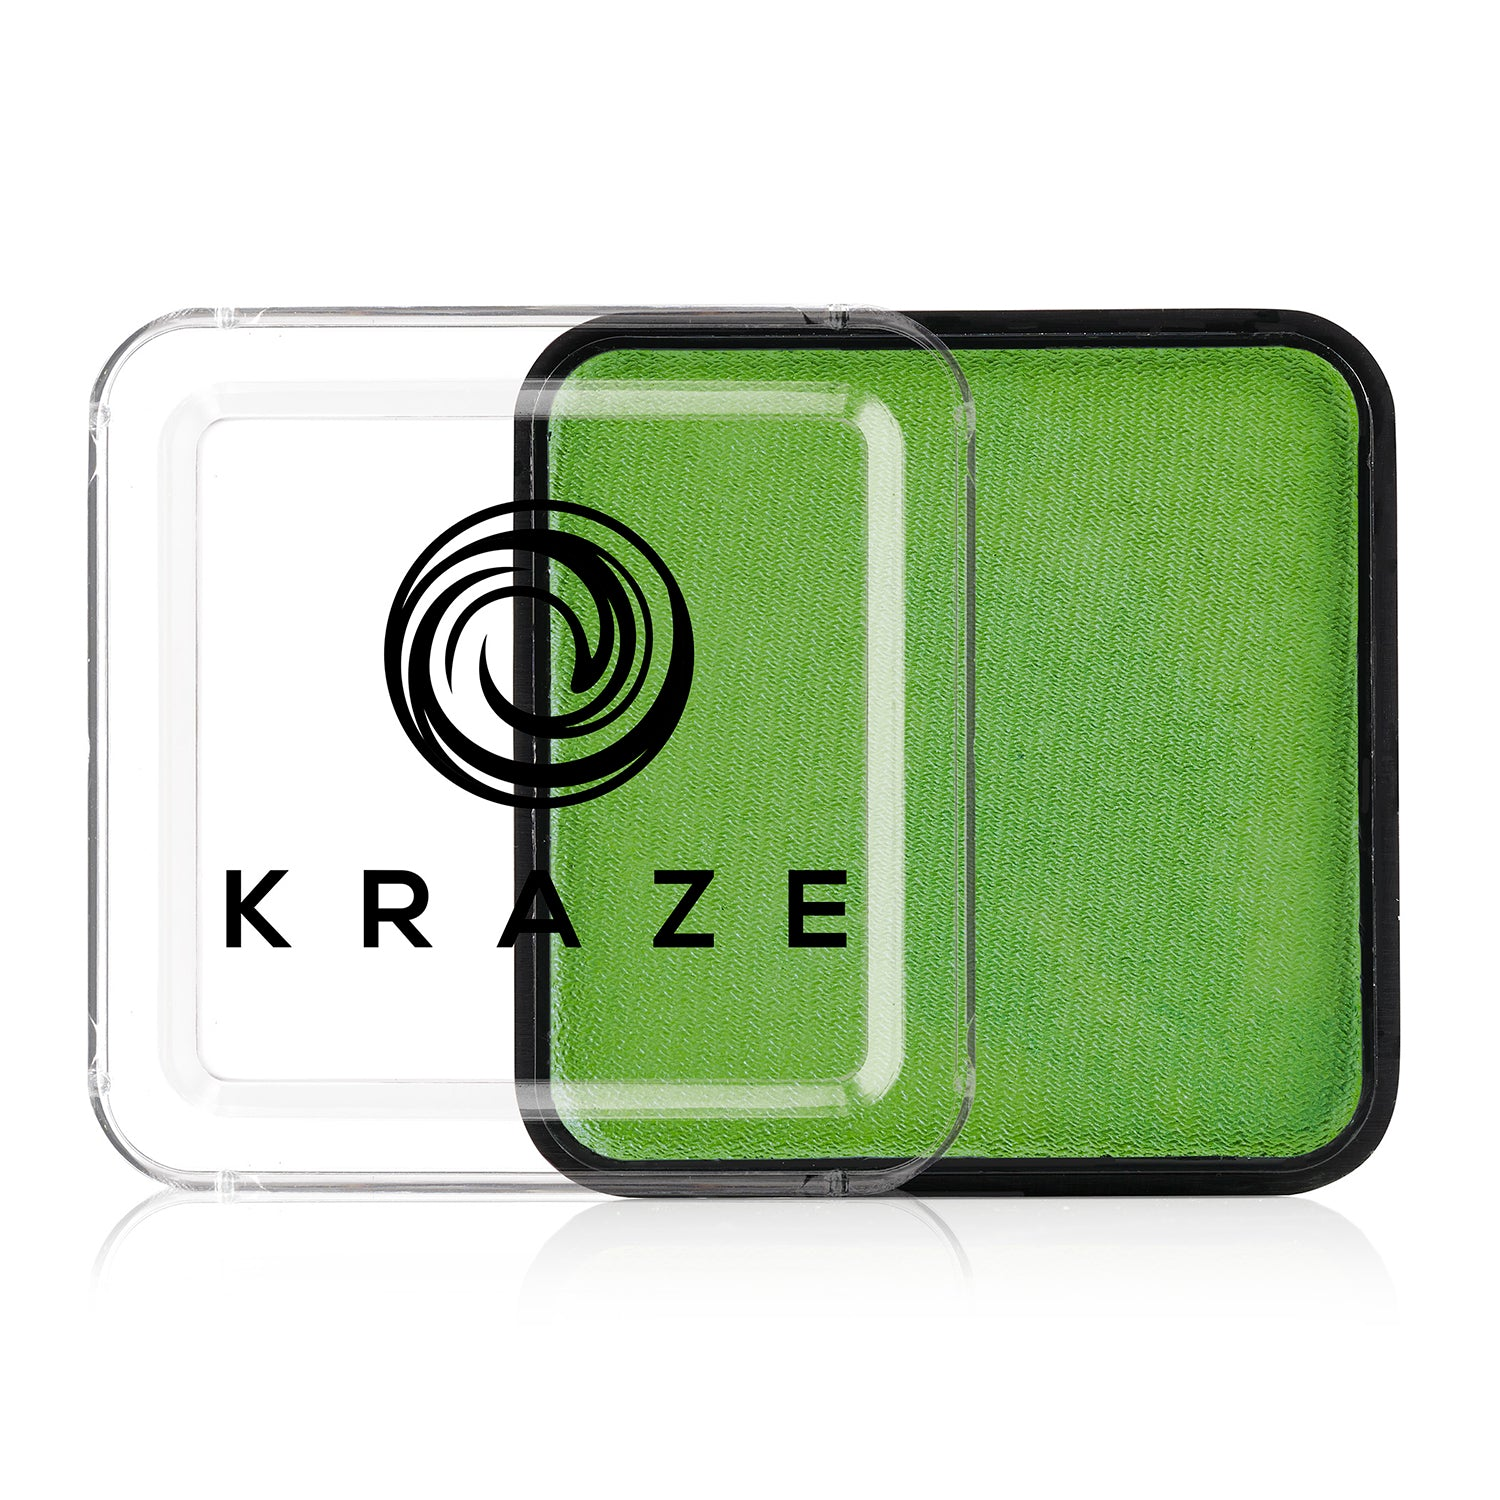 Kraze FX Face Paint - 25 gm - Lime Green